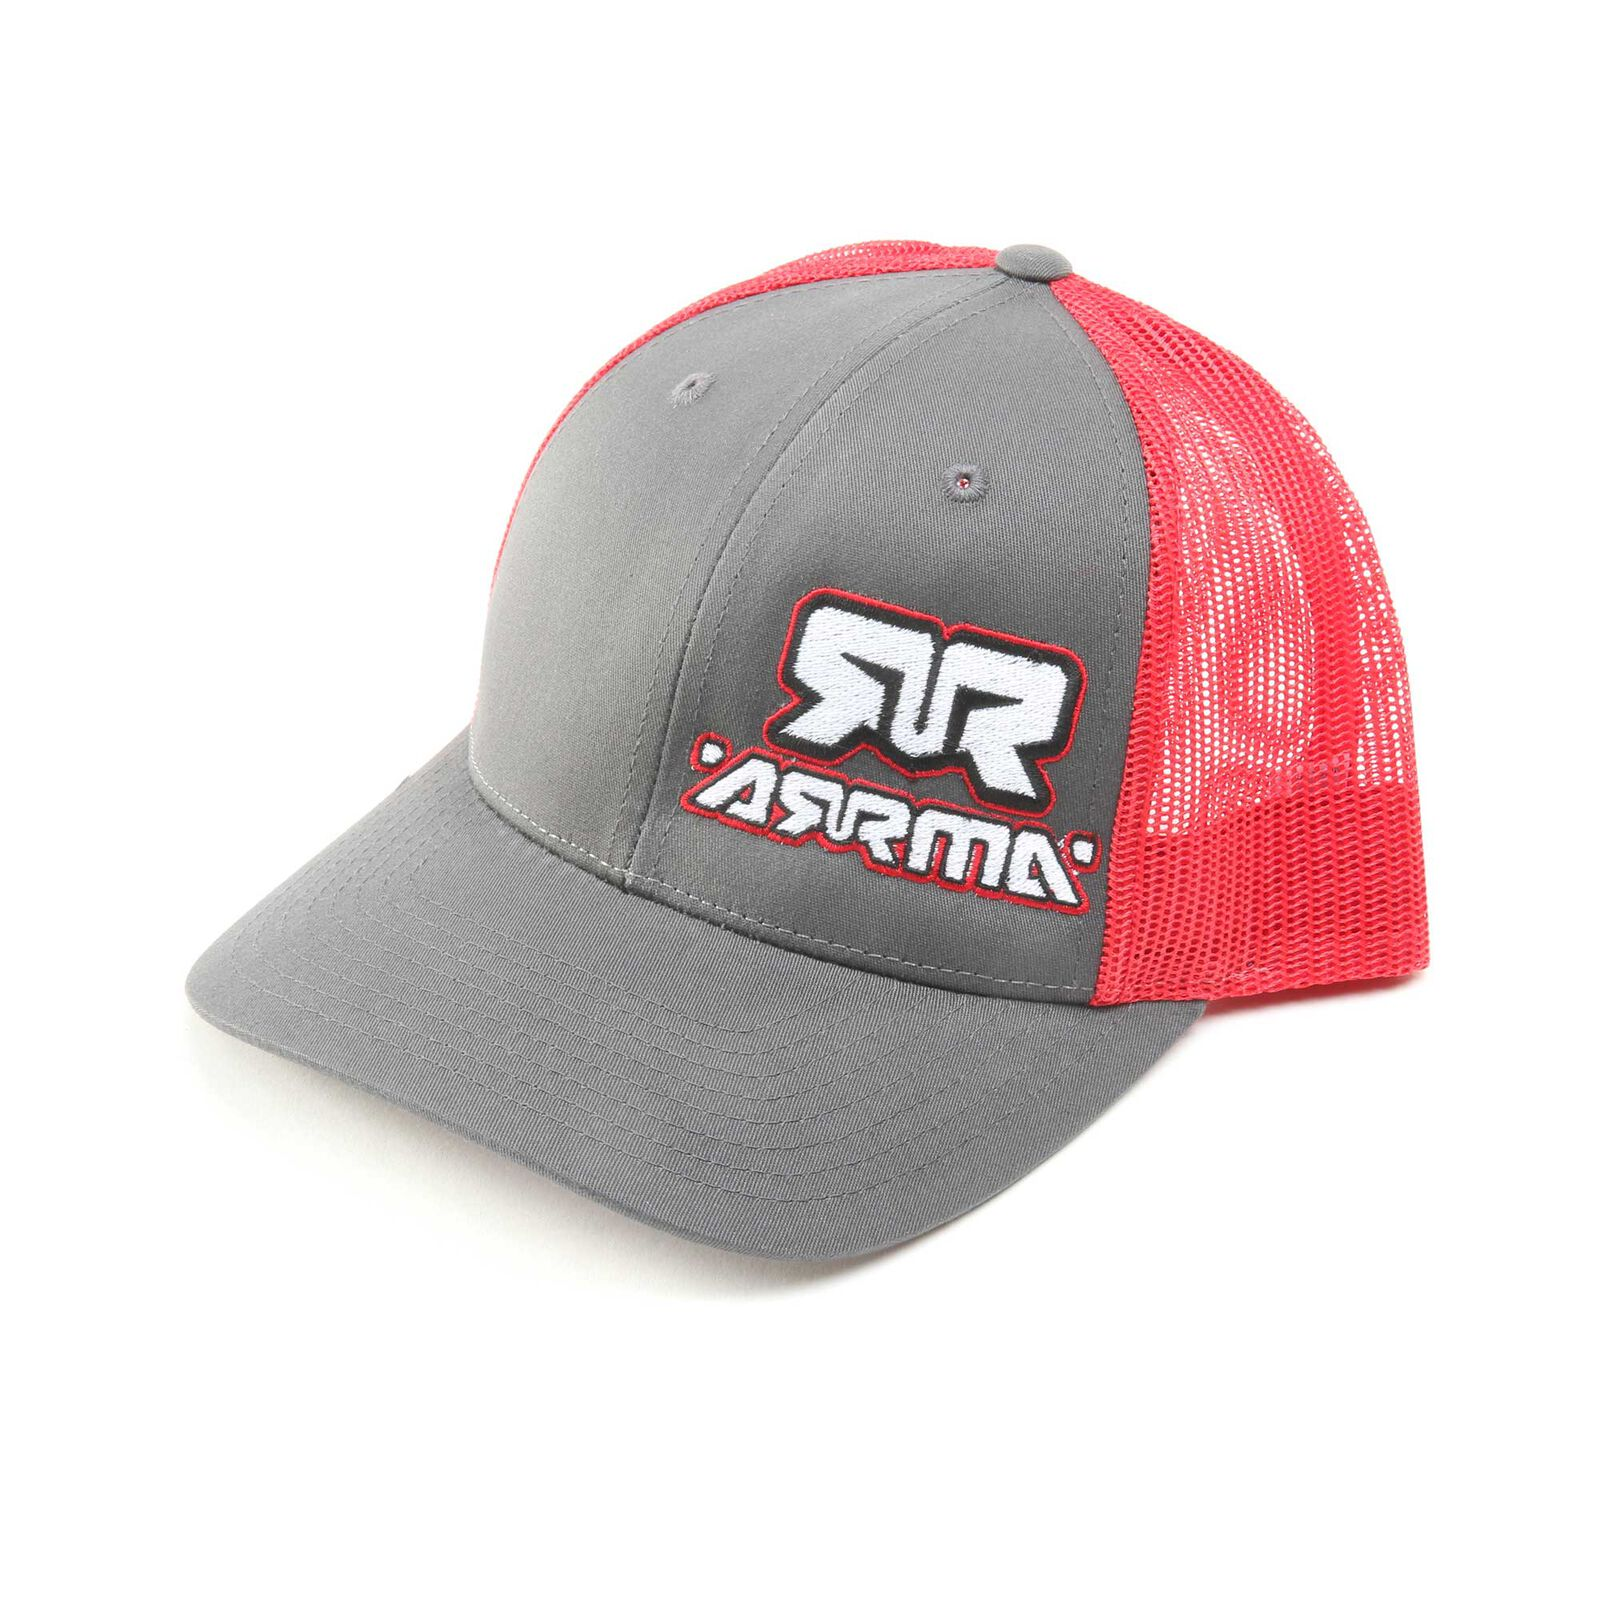 Trucker Hat, Red Charcoal